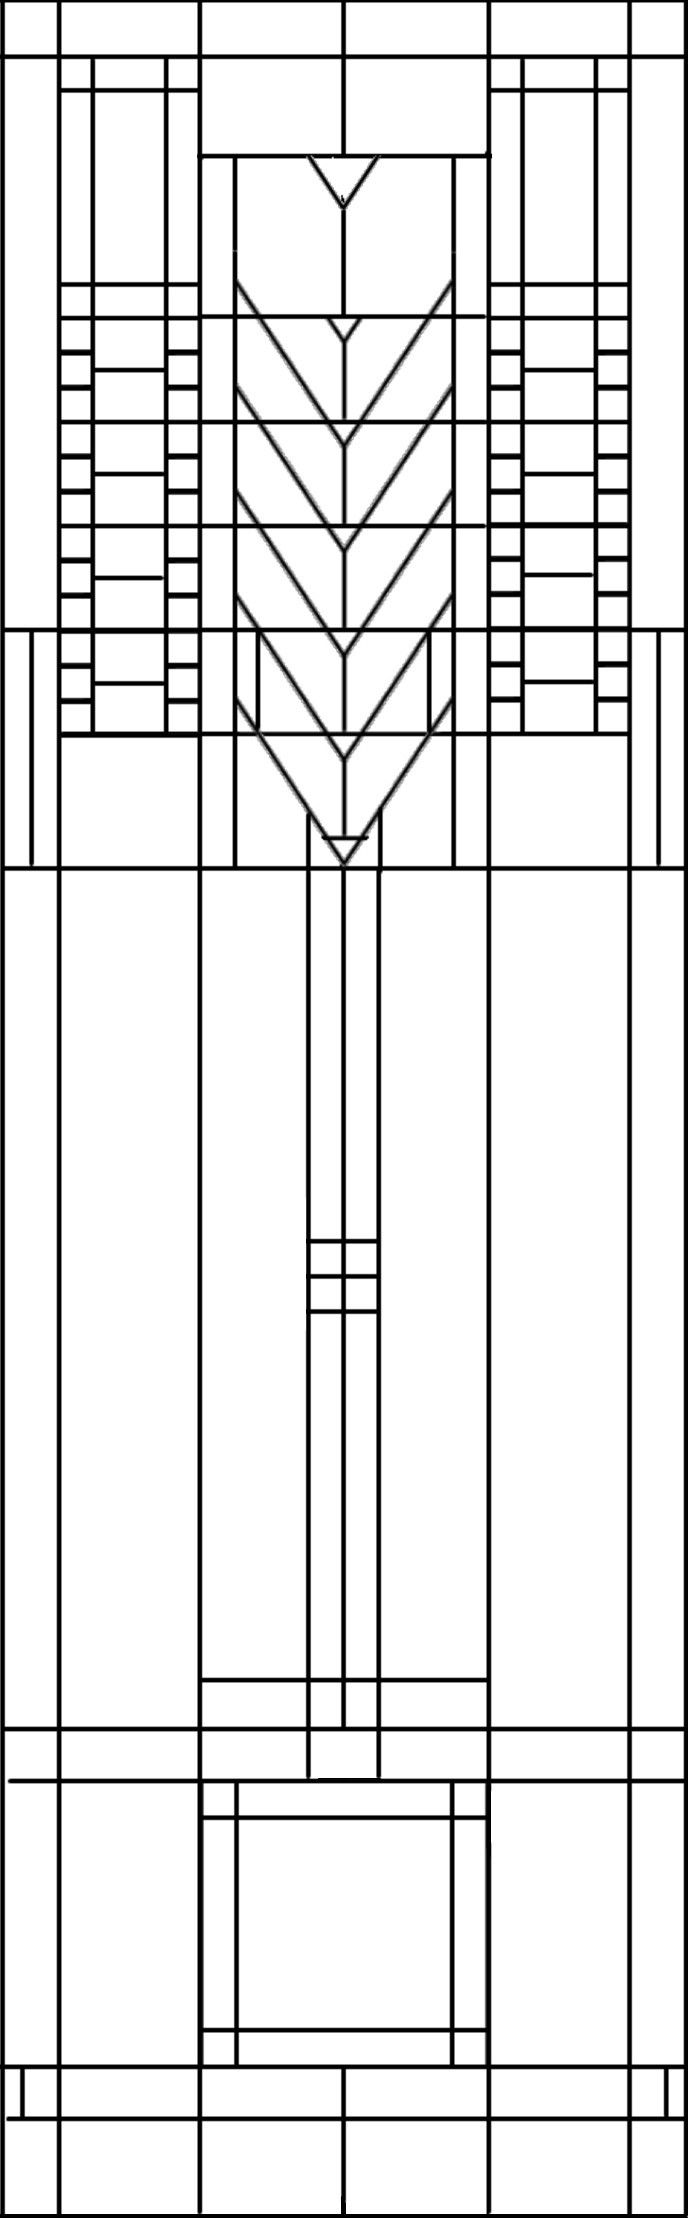 Frank Lloyd Wright Stained Glass Patterns.Frank Lloyd Wright Patterns Google Search Stained Glass